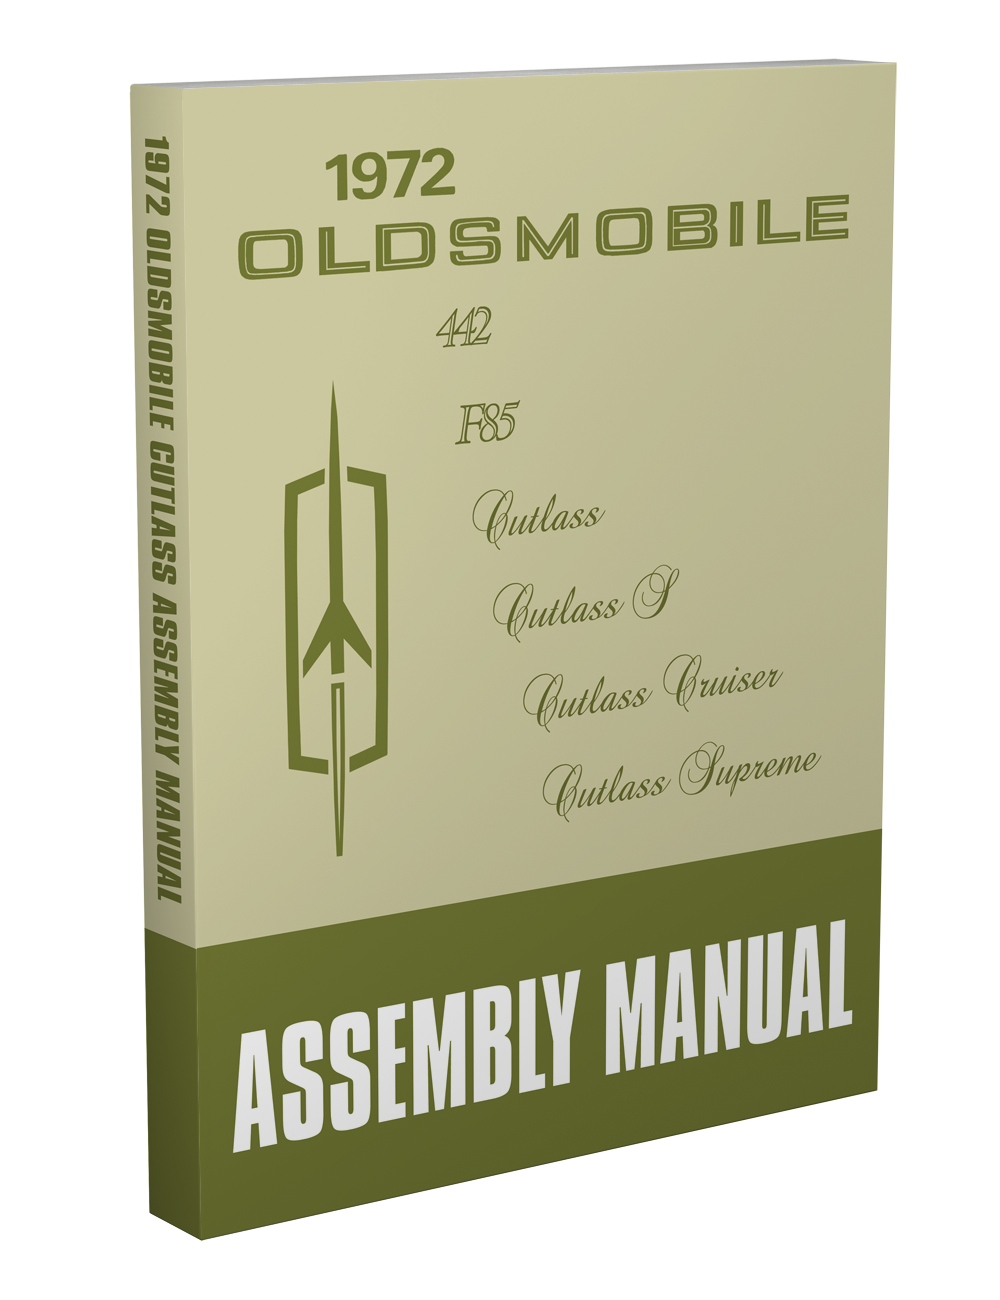 1972 Oldsmobile Assembly Manual Olds 442 F85 Cutlass S Cruiser Supreme  Reprint